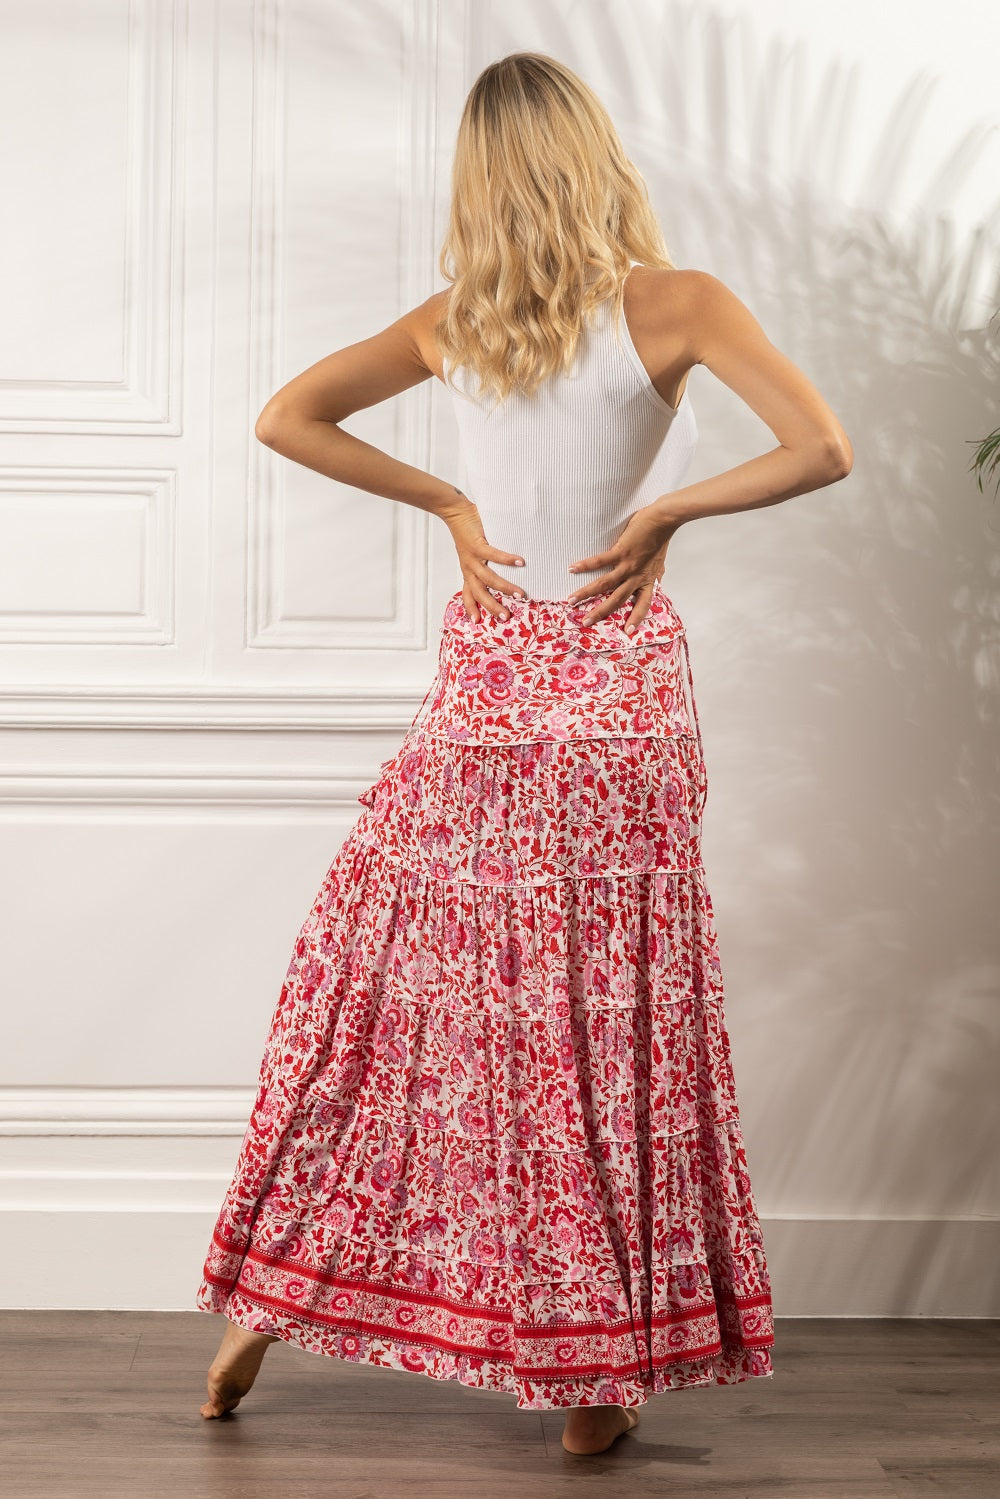 Poupette St Barth Long Skirt Camila